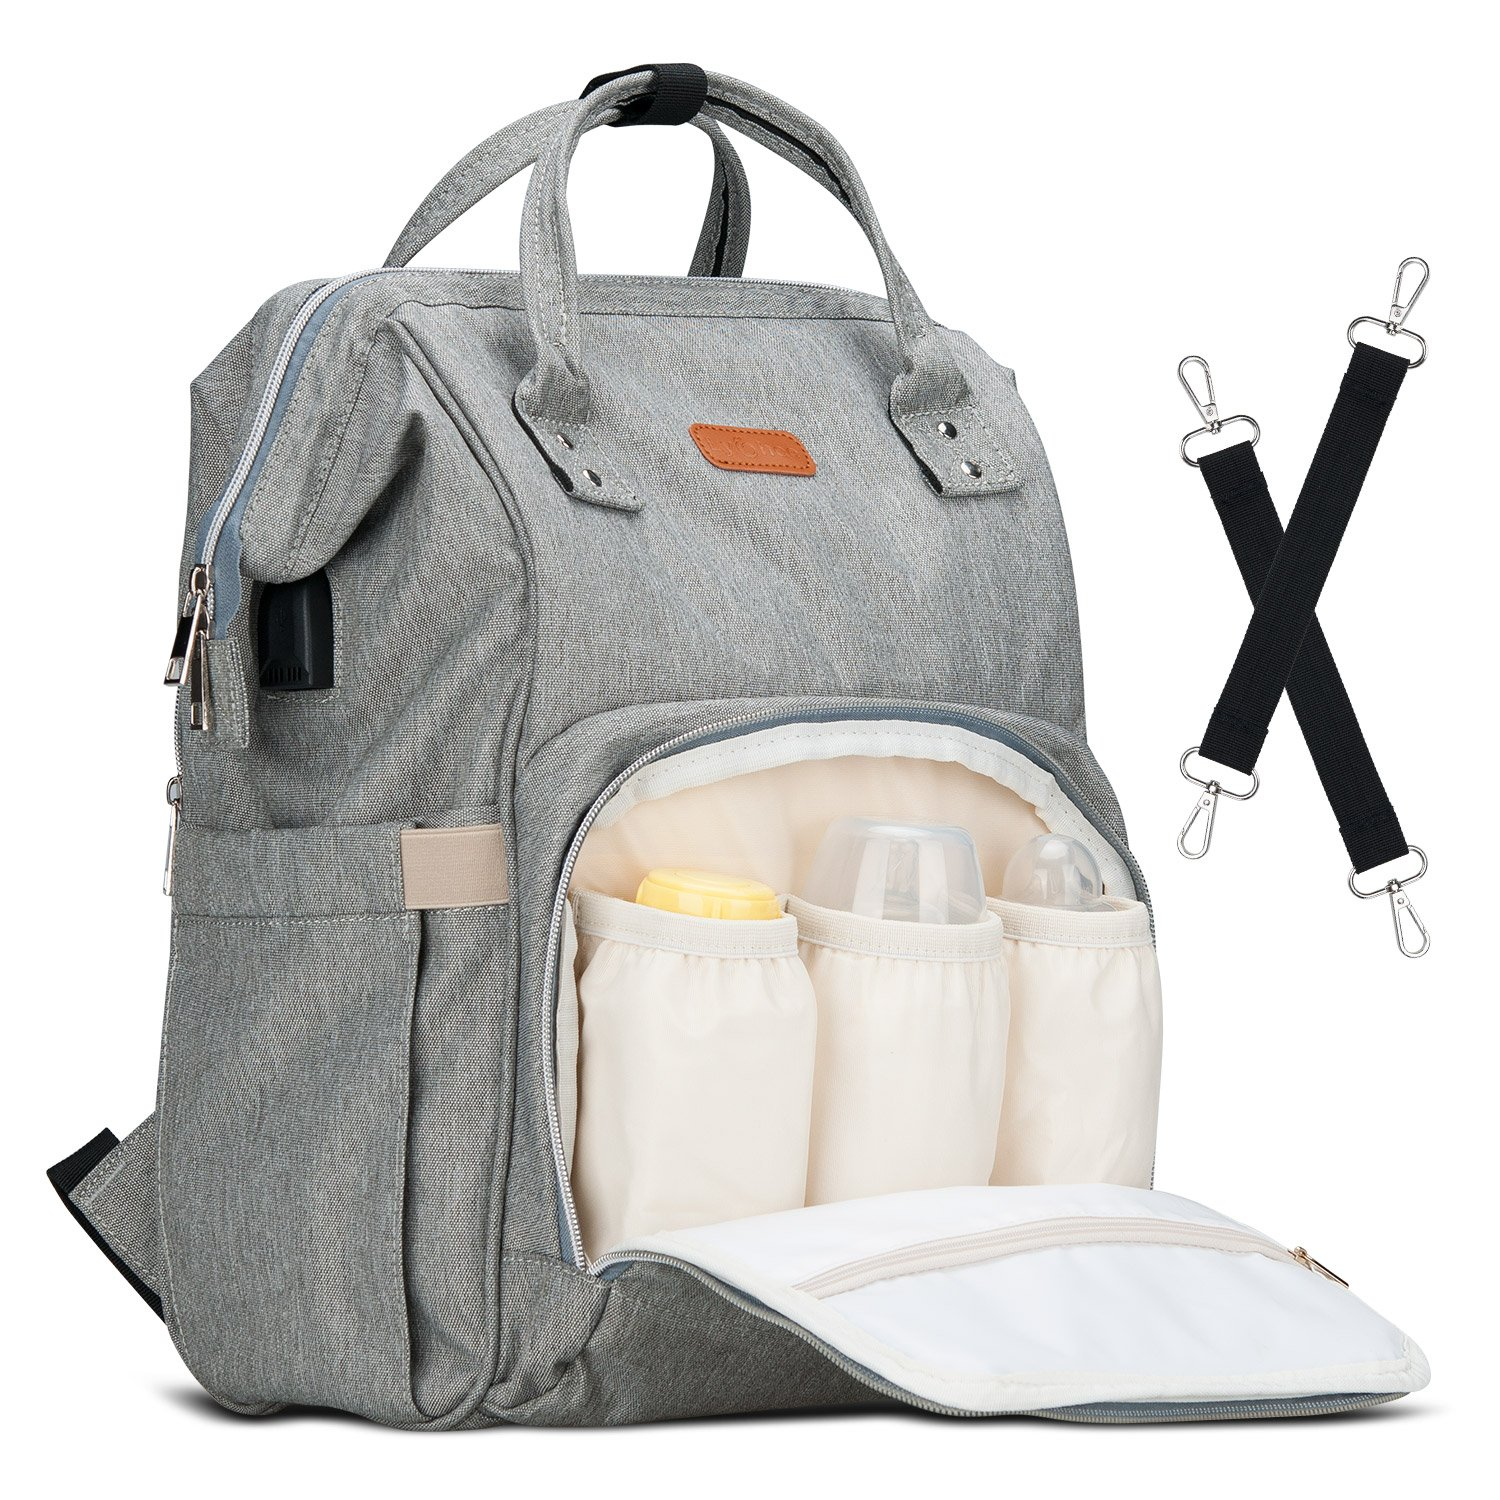 Diaper Bag Backpack Lychee Multi-Function Waterproof Outdoor Travel Large Capacity Diaper Nappy Bags for Baby Care,Best Ideal Stylish Bags for Mommy and Daddy (Grey)